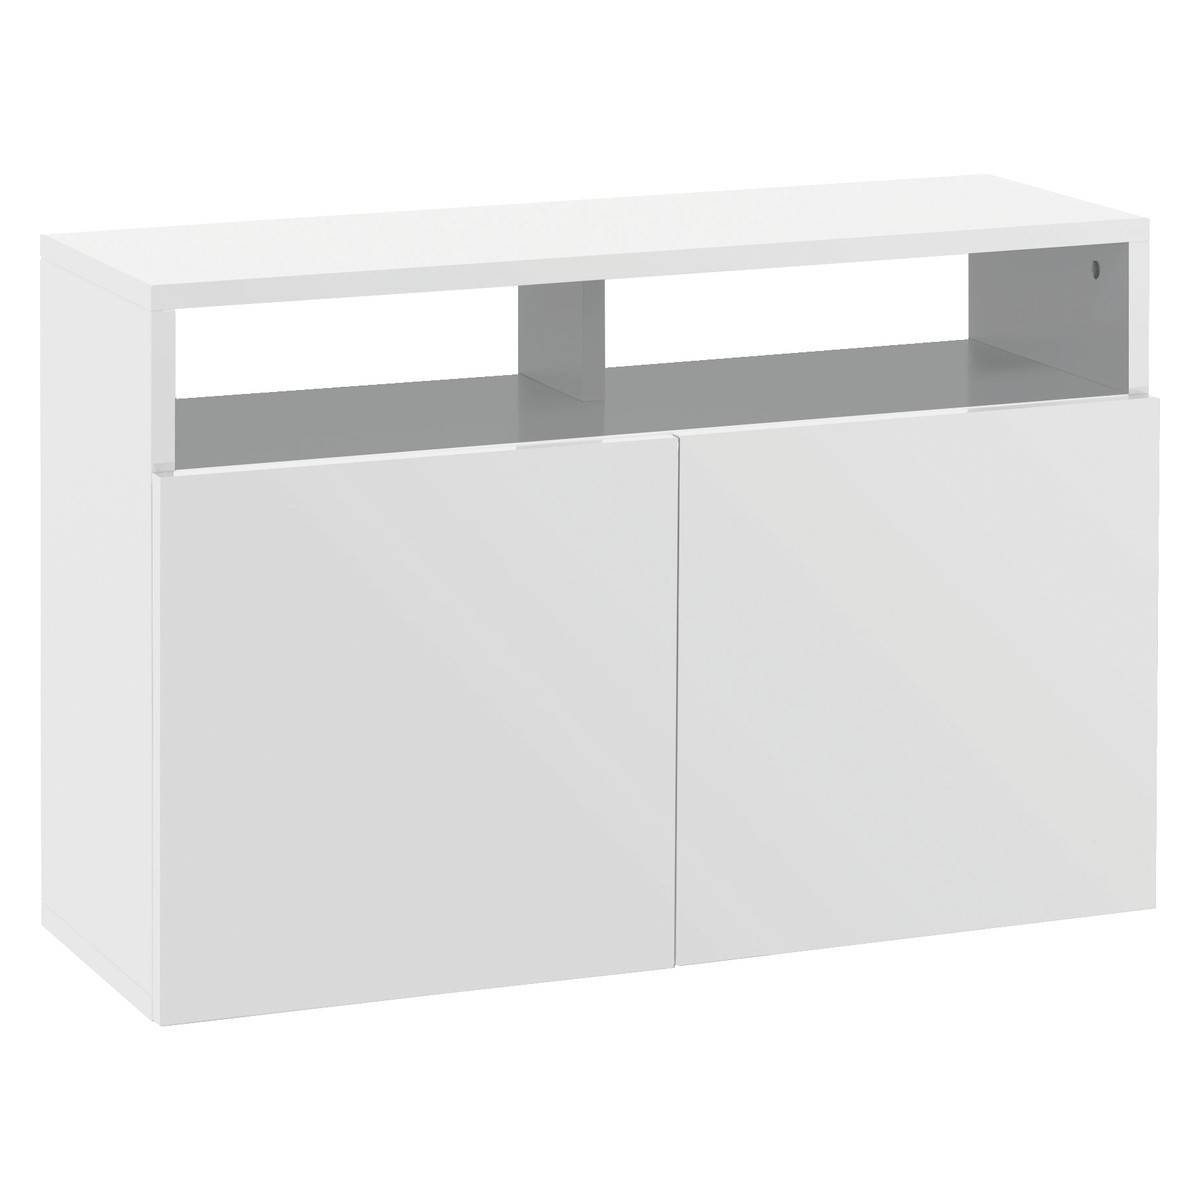 Kubrik White High Gloss Small Sideboard | Buy Now At Habitat Uk With Regard To White Sideboards For Sale (#5 of 20)